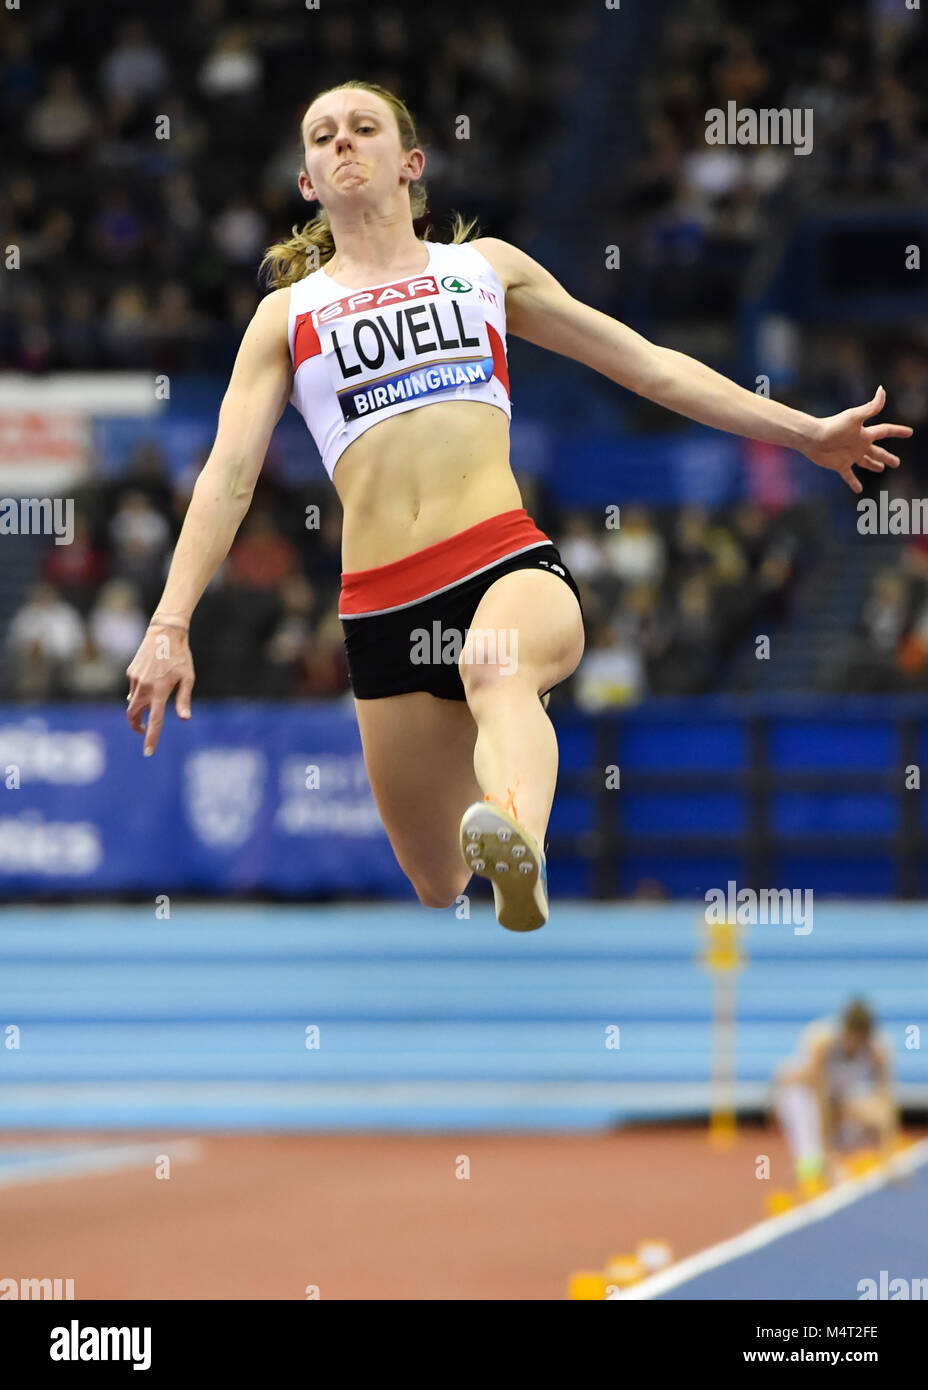 Elise Lovell in action during today's Women's High Jump  during SPAR British Athletics Indoor Championships - Stock Image